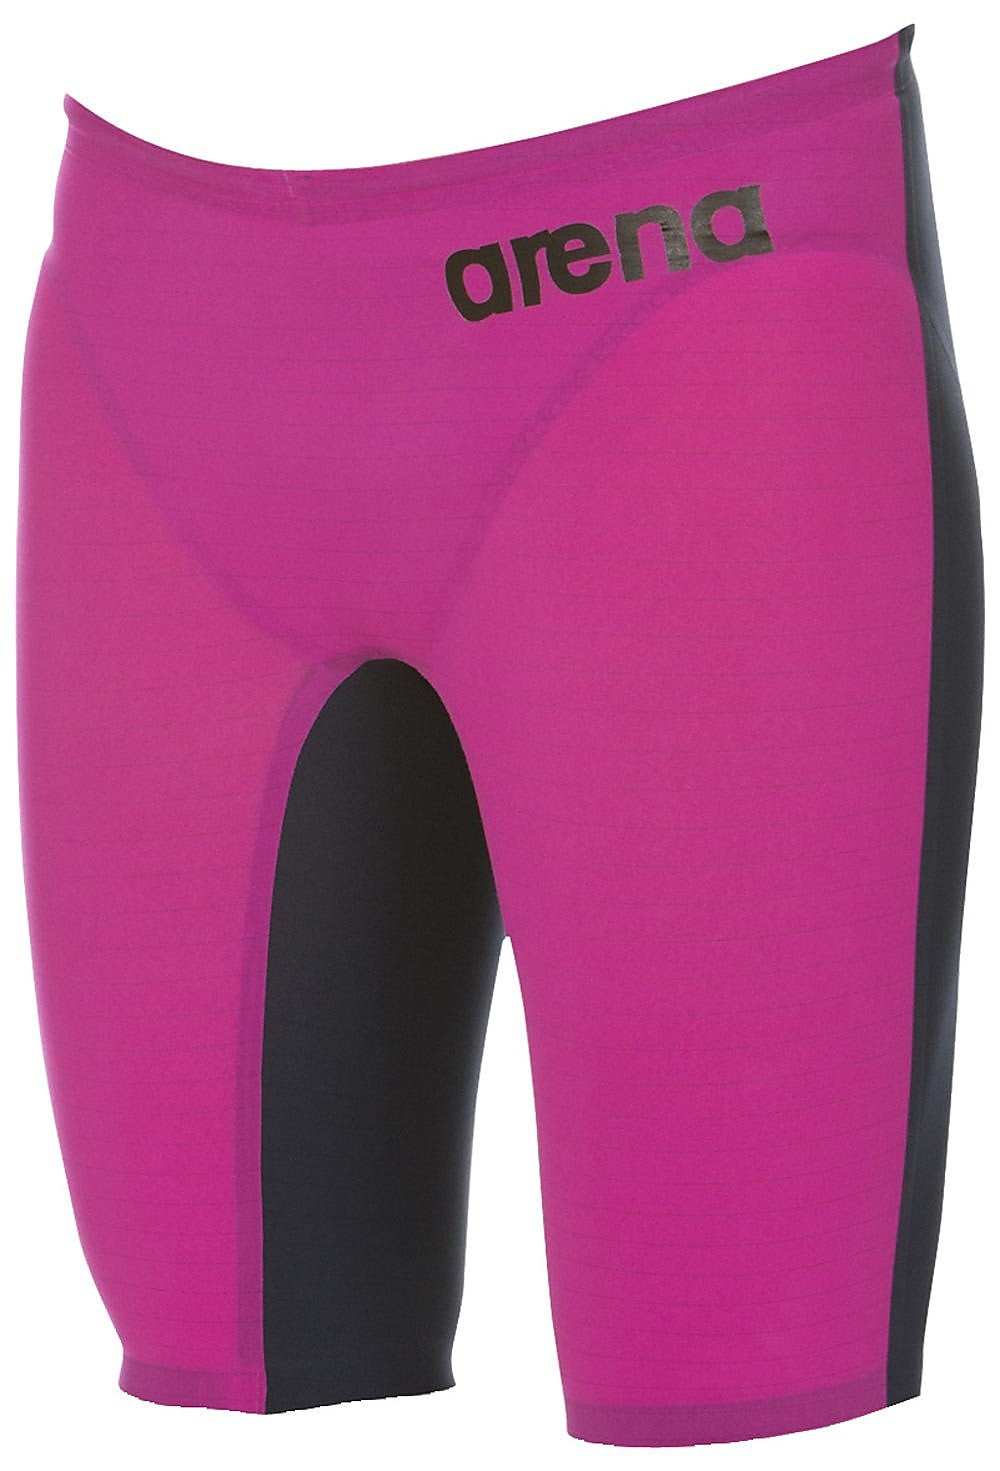 Arena Carbon Air Men's Jammer